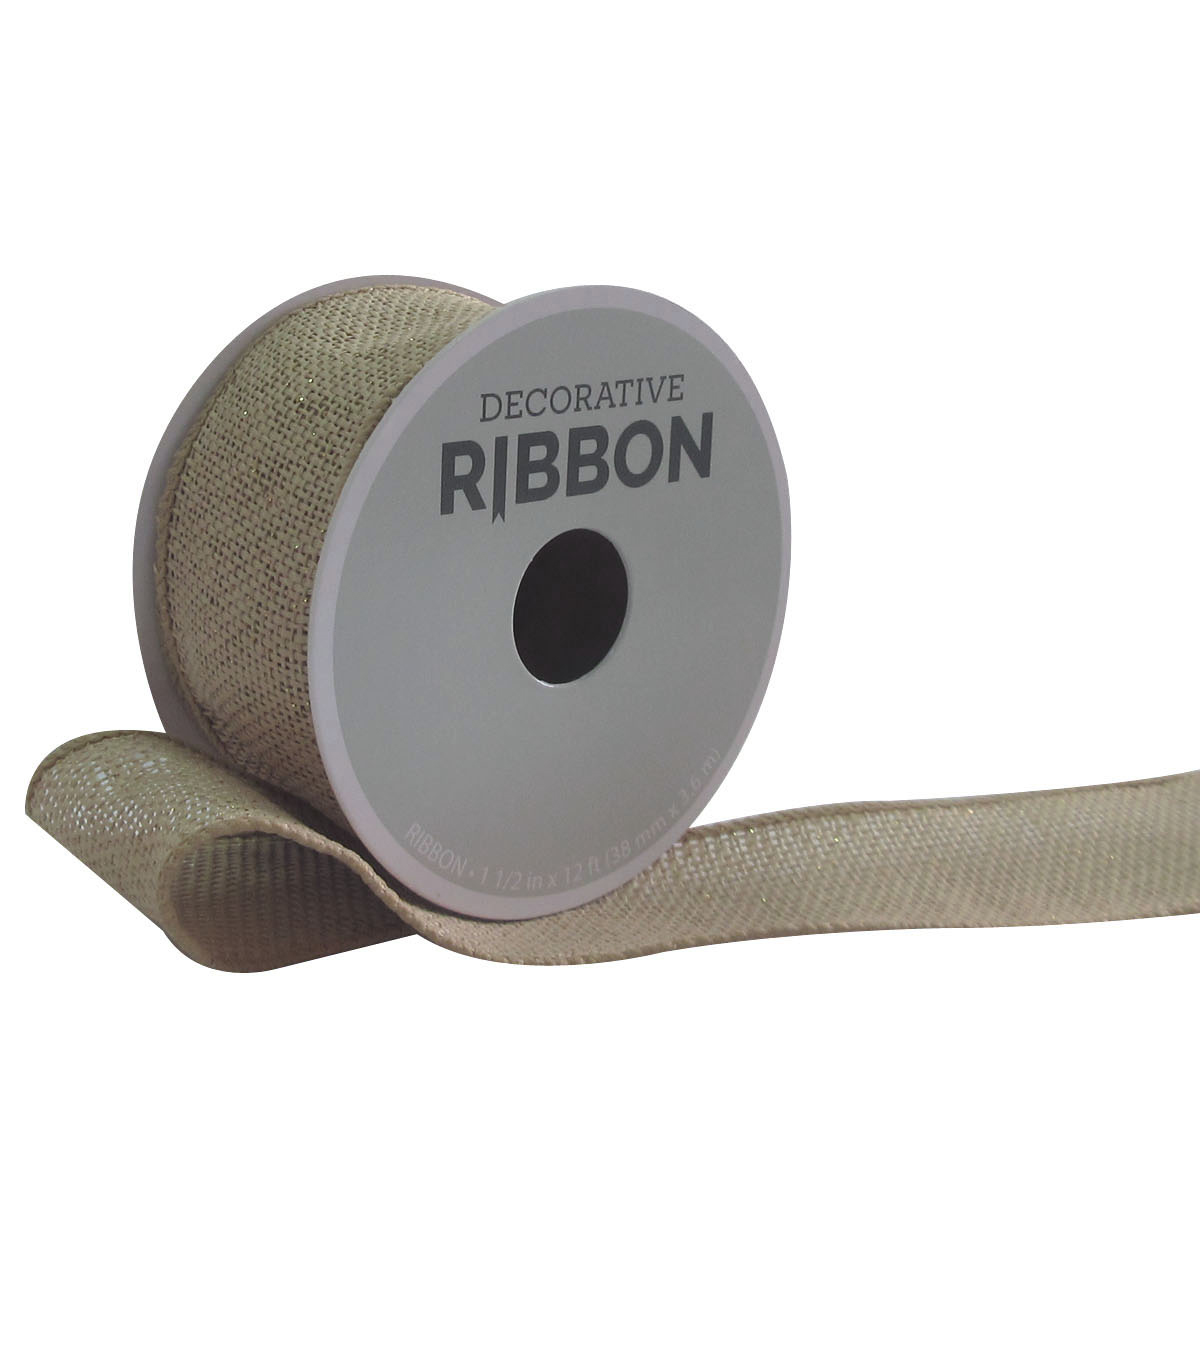 Decorative Ribbon 1.5\u0027\u0027x12\u0027 Natural Burlap-Gold Metallic